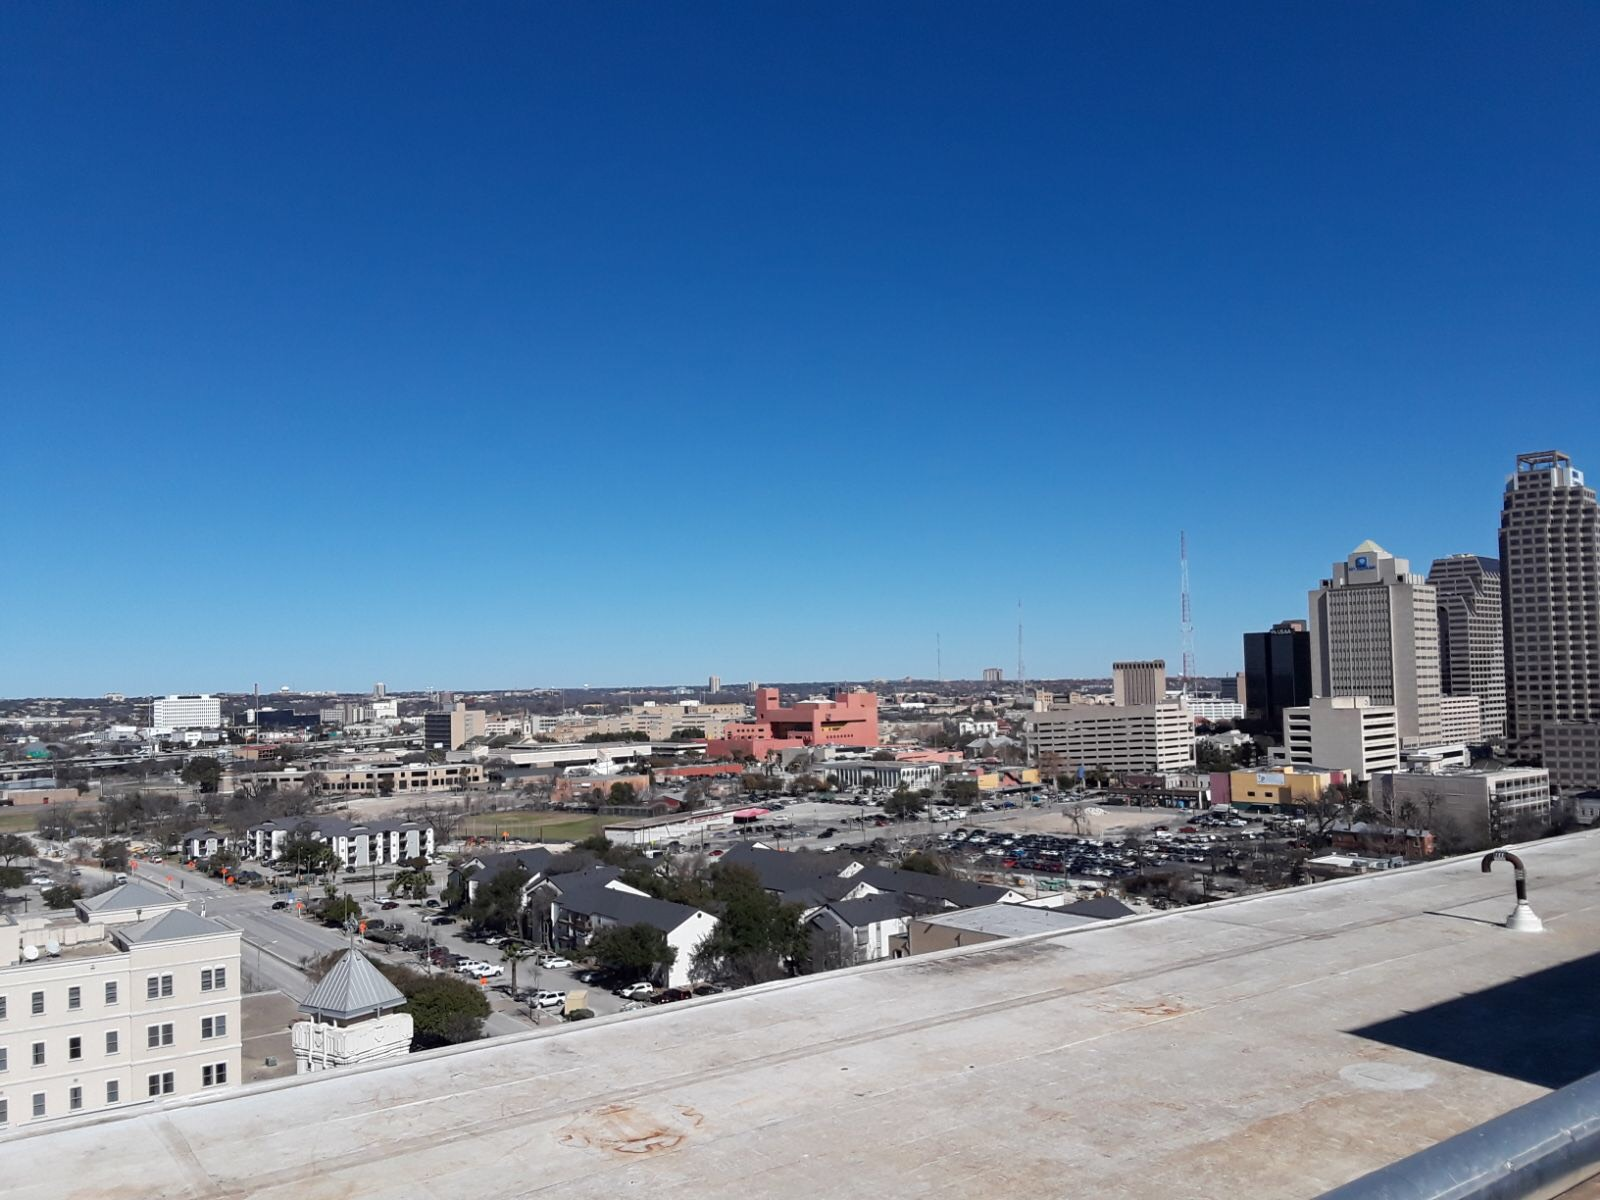 View of the San Antonio skyline. Photo courtesy Alejandra Hernandez.